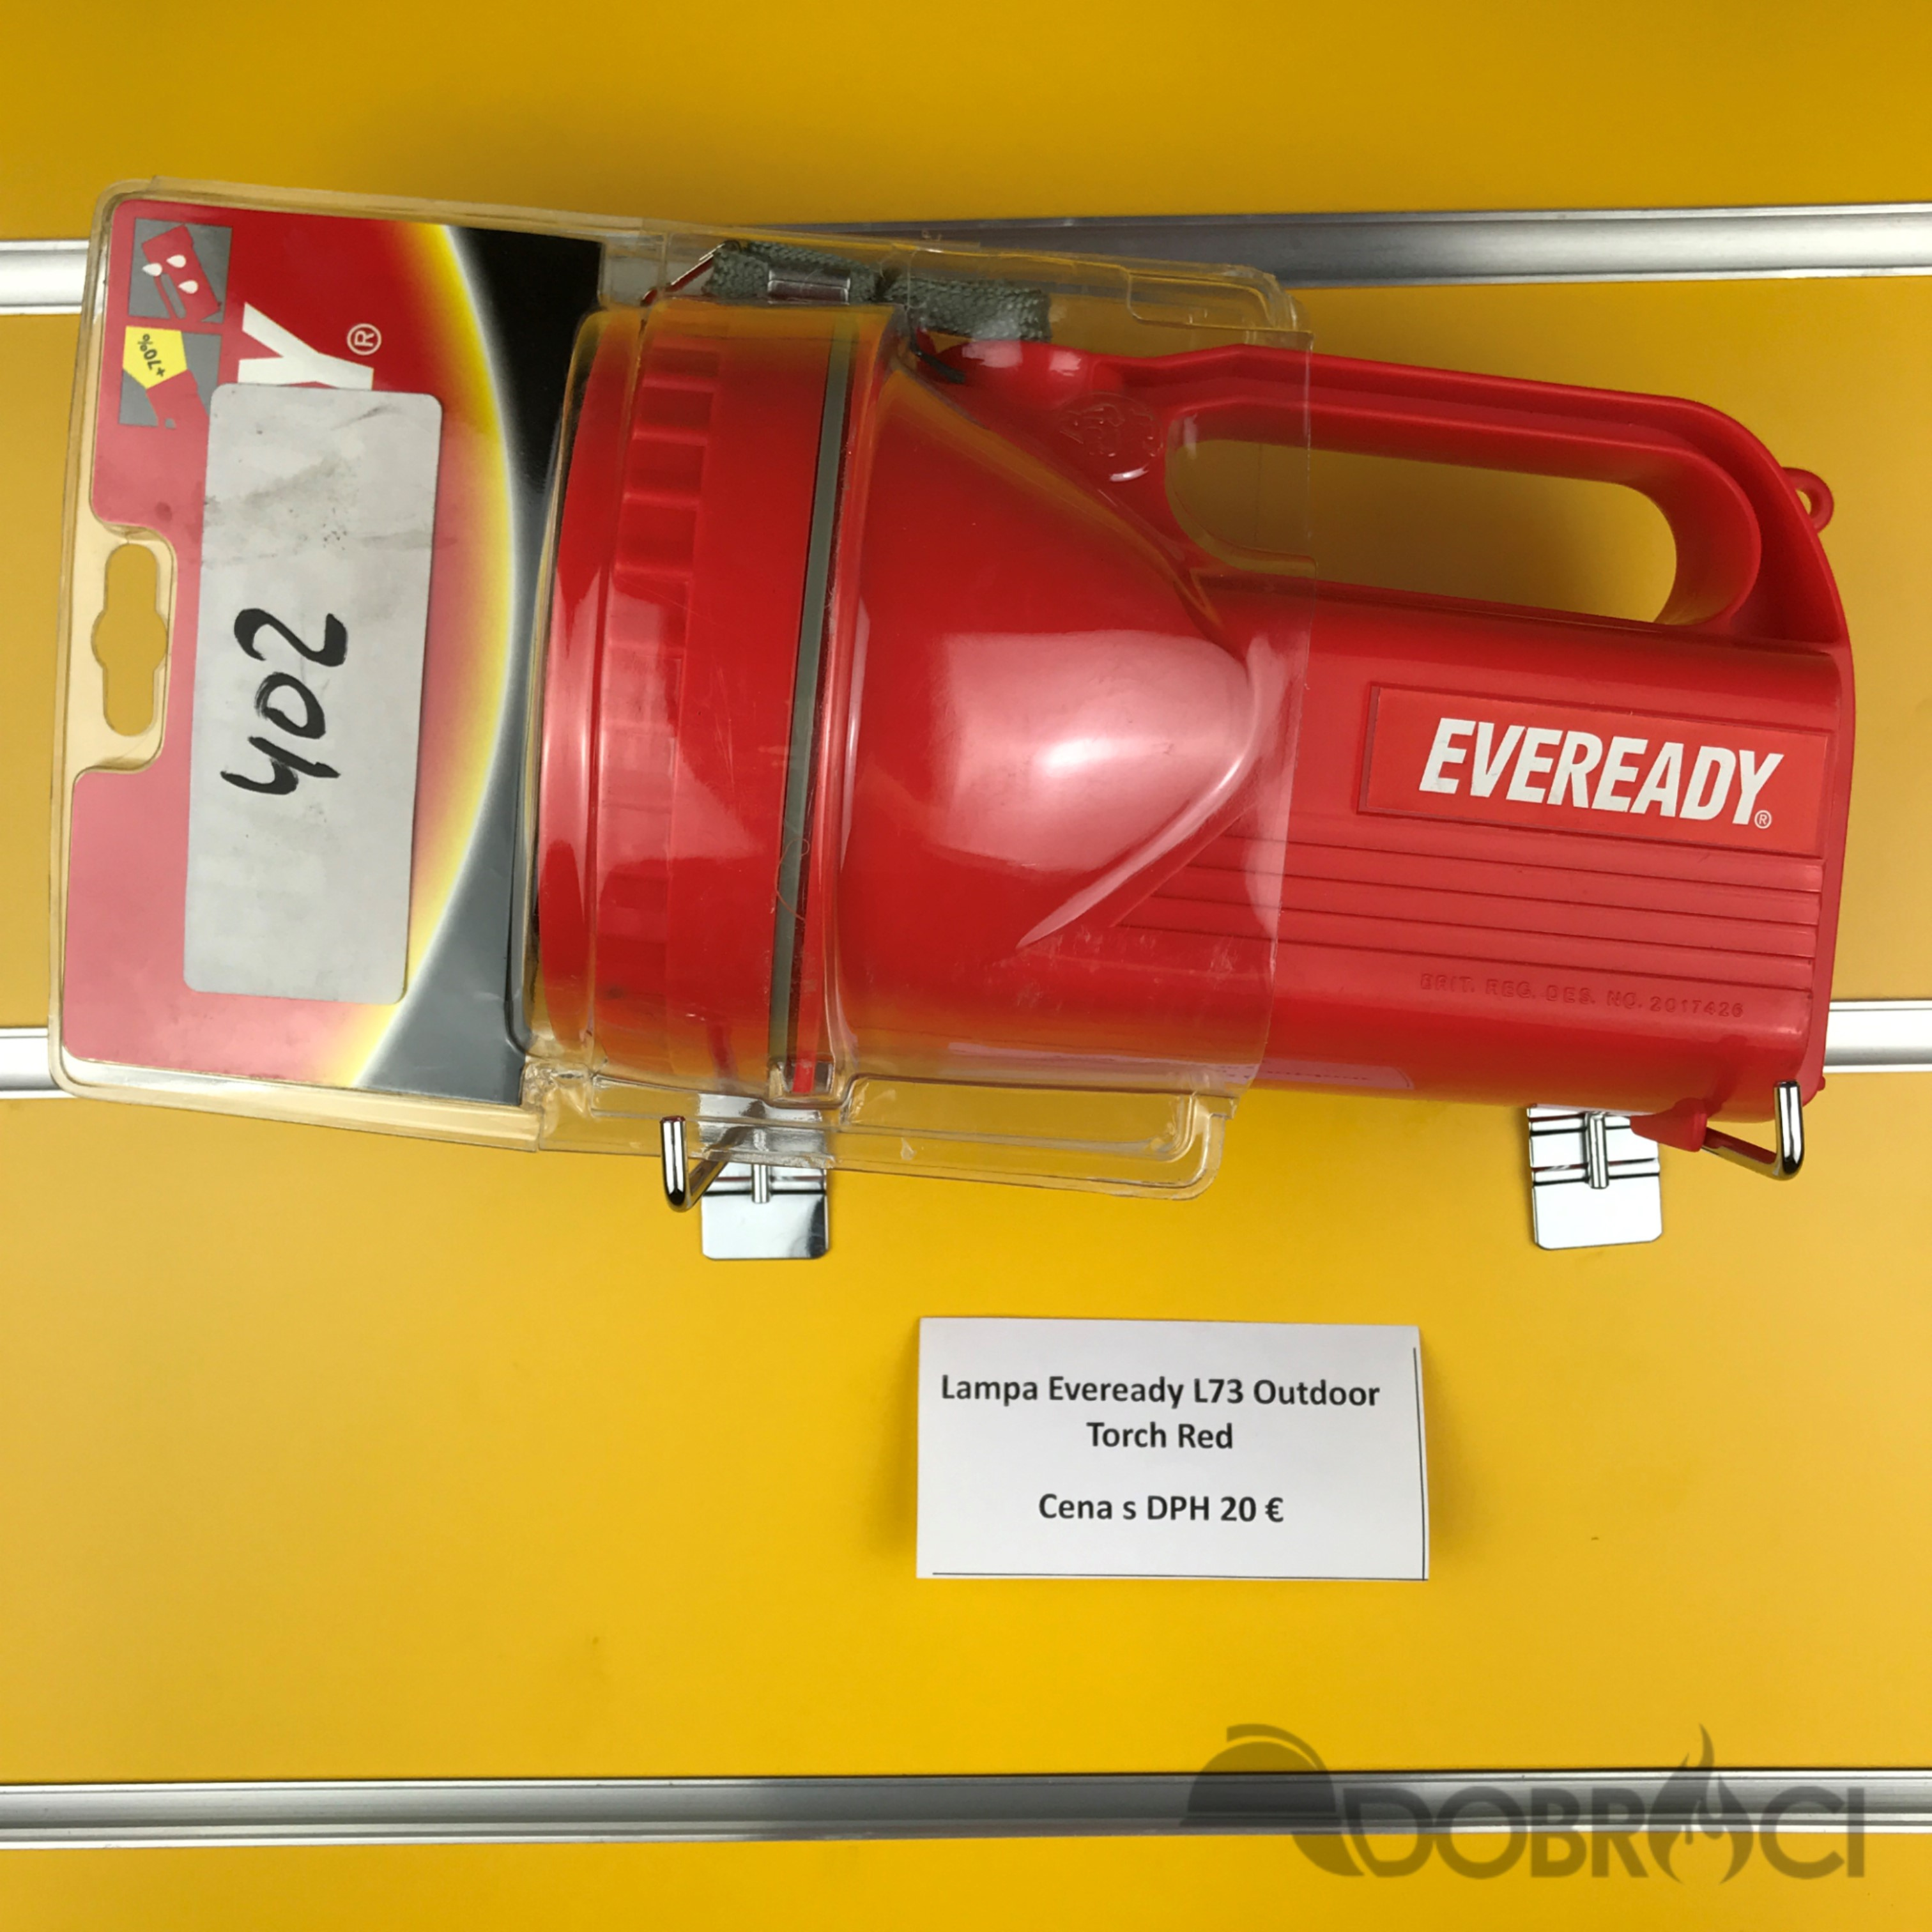 LAMPA EVEREADY L73 OUTDOOR